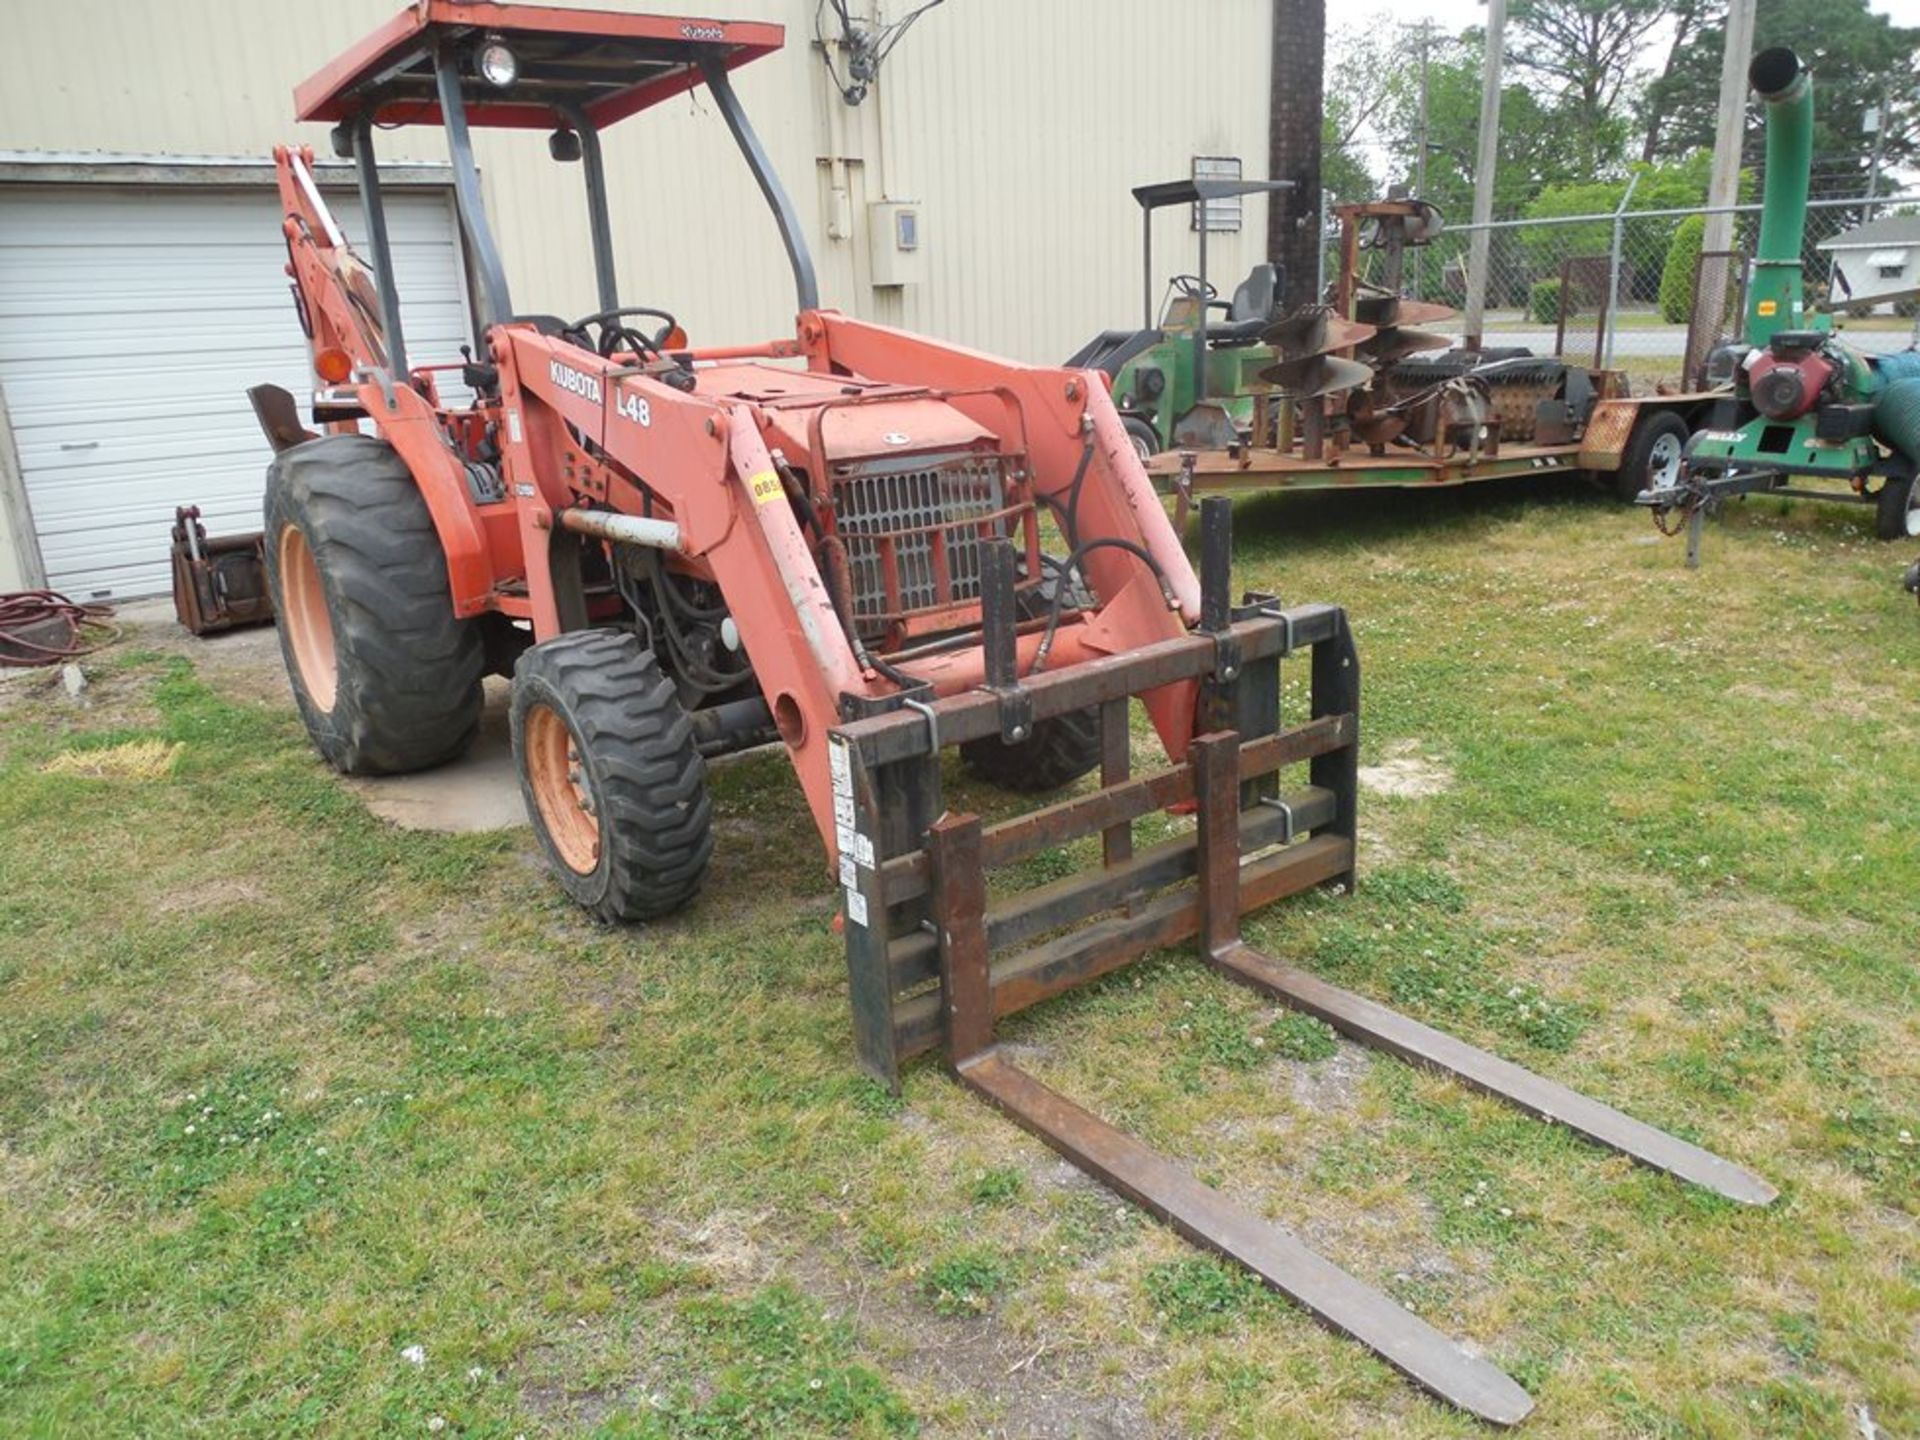 Kubota L48 Tractor Hydrostat trans. 4wd, forks and 4 in 1 bucket, backhoe attachement - Image 3 of 7